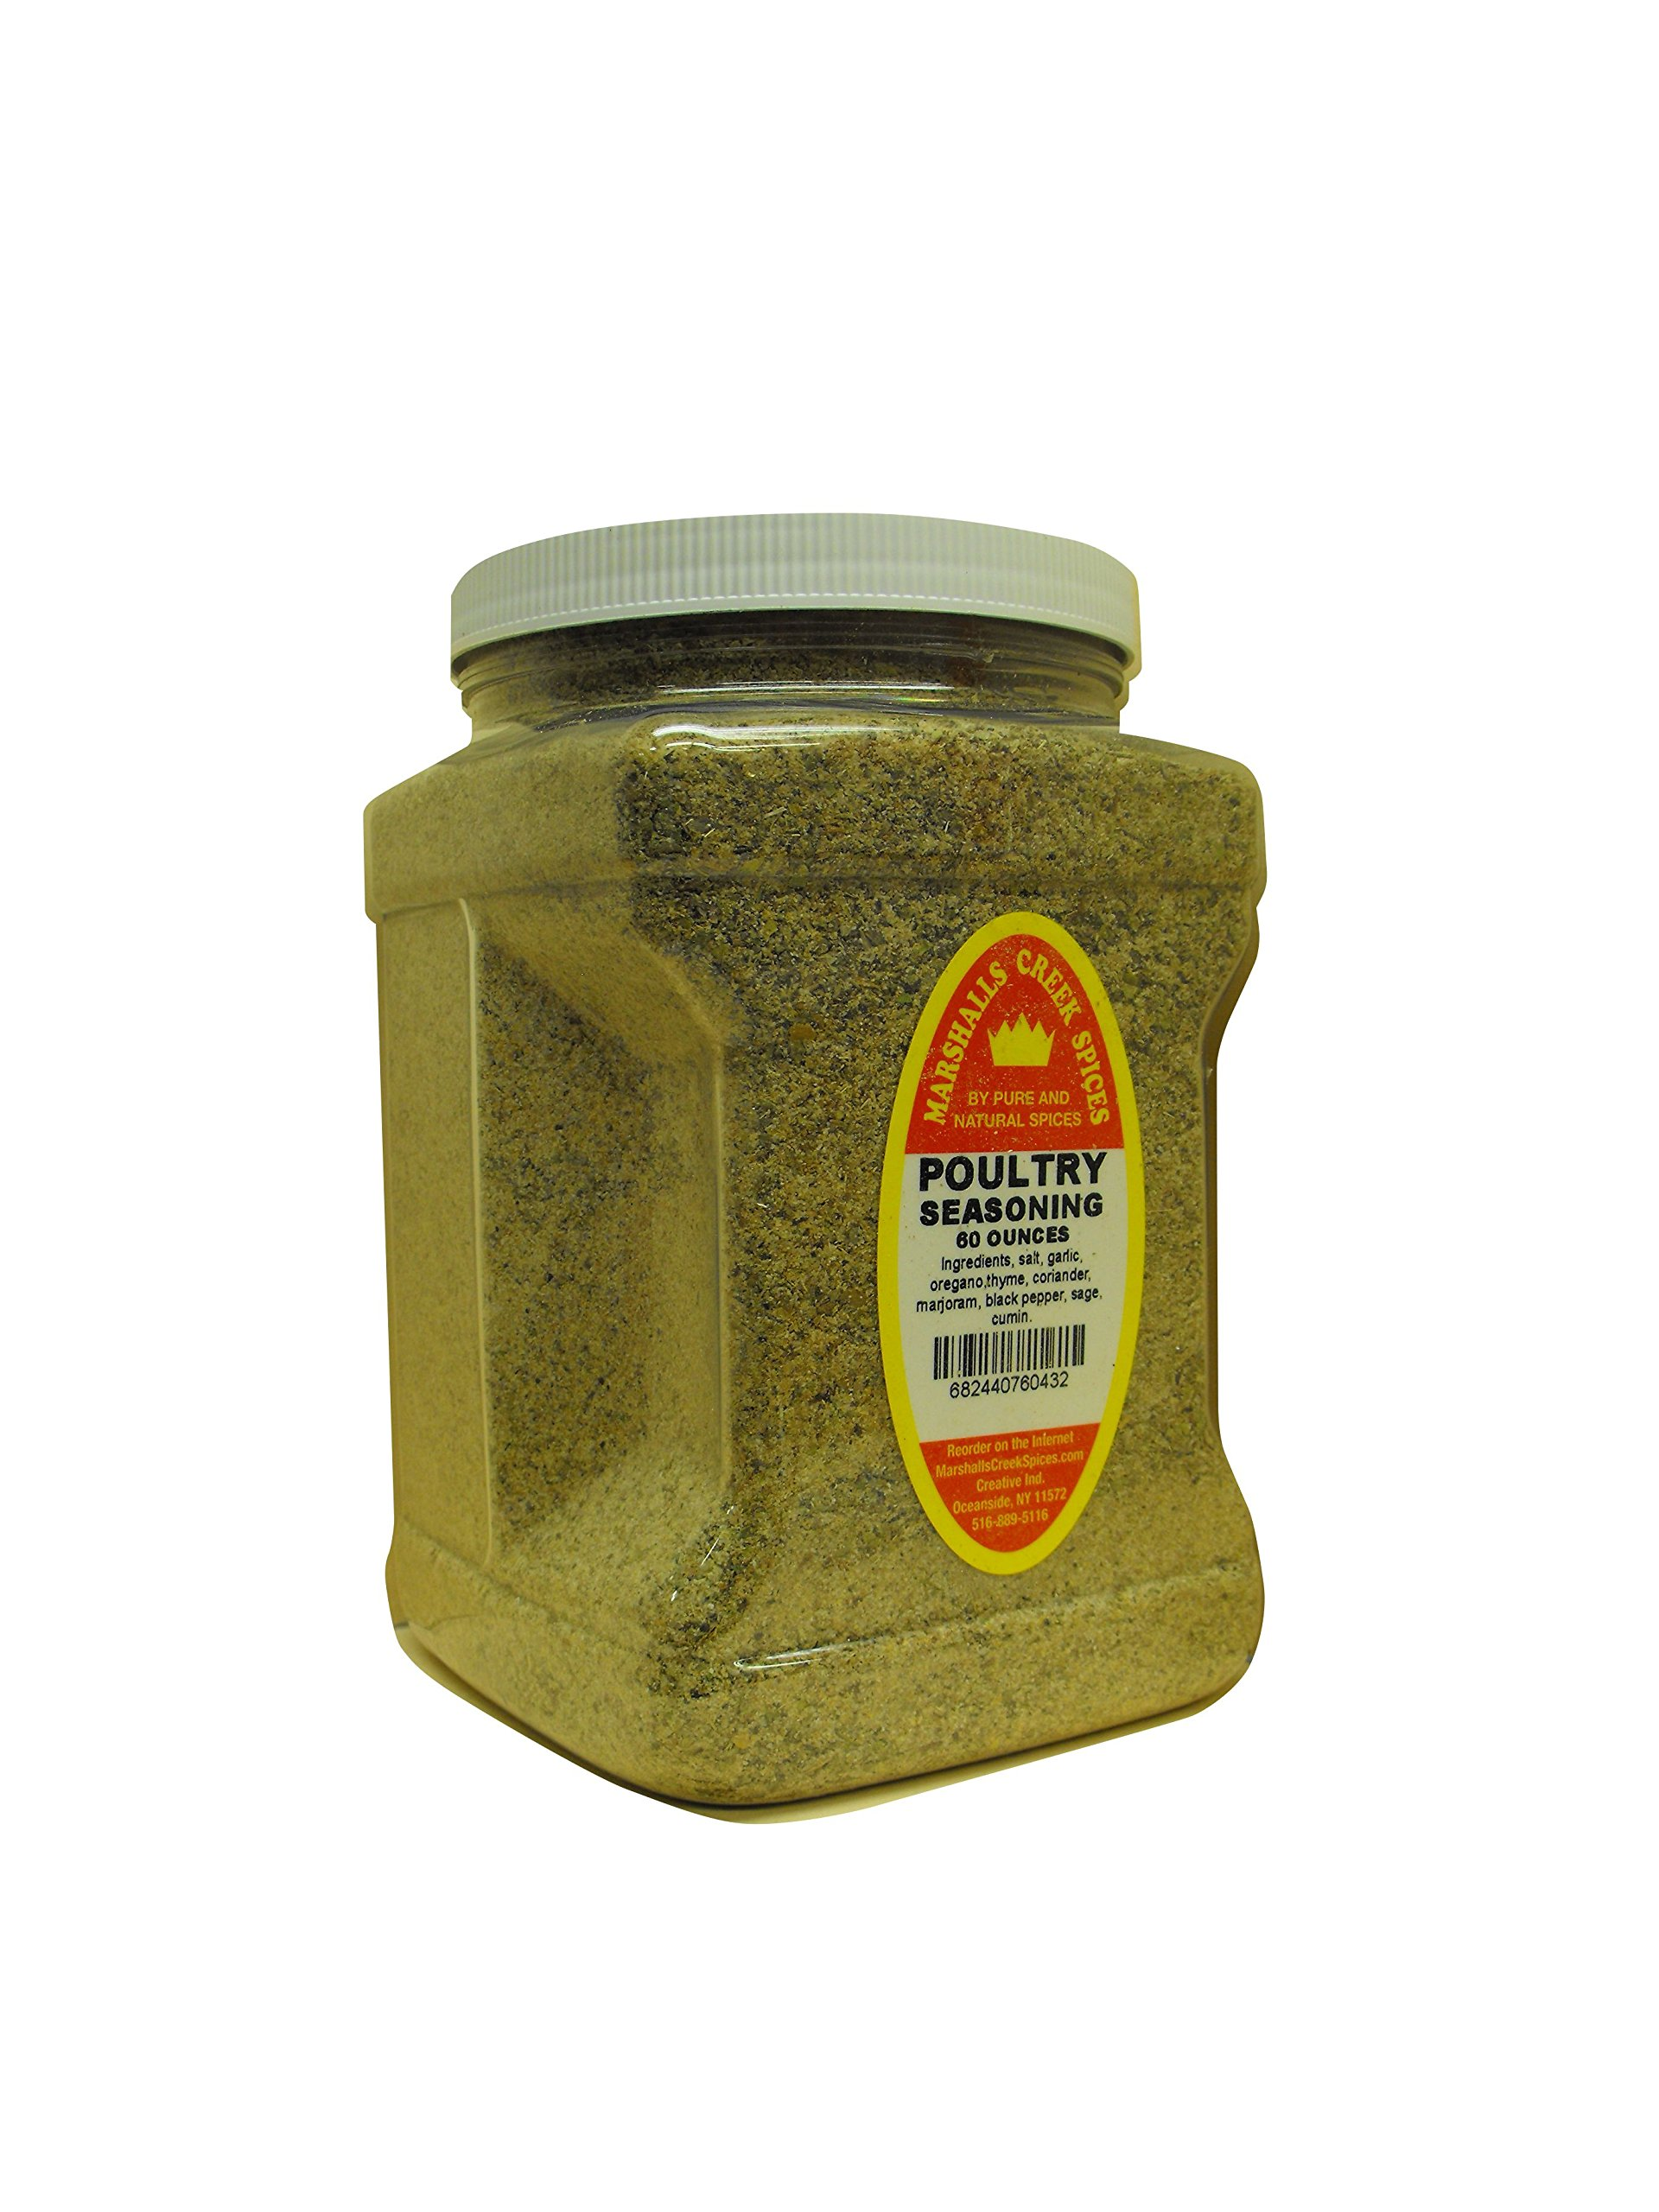 Family Size Marshalls Creek Spices Superb Fish And Poultry Seasoning, 60 Ounce